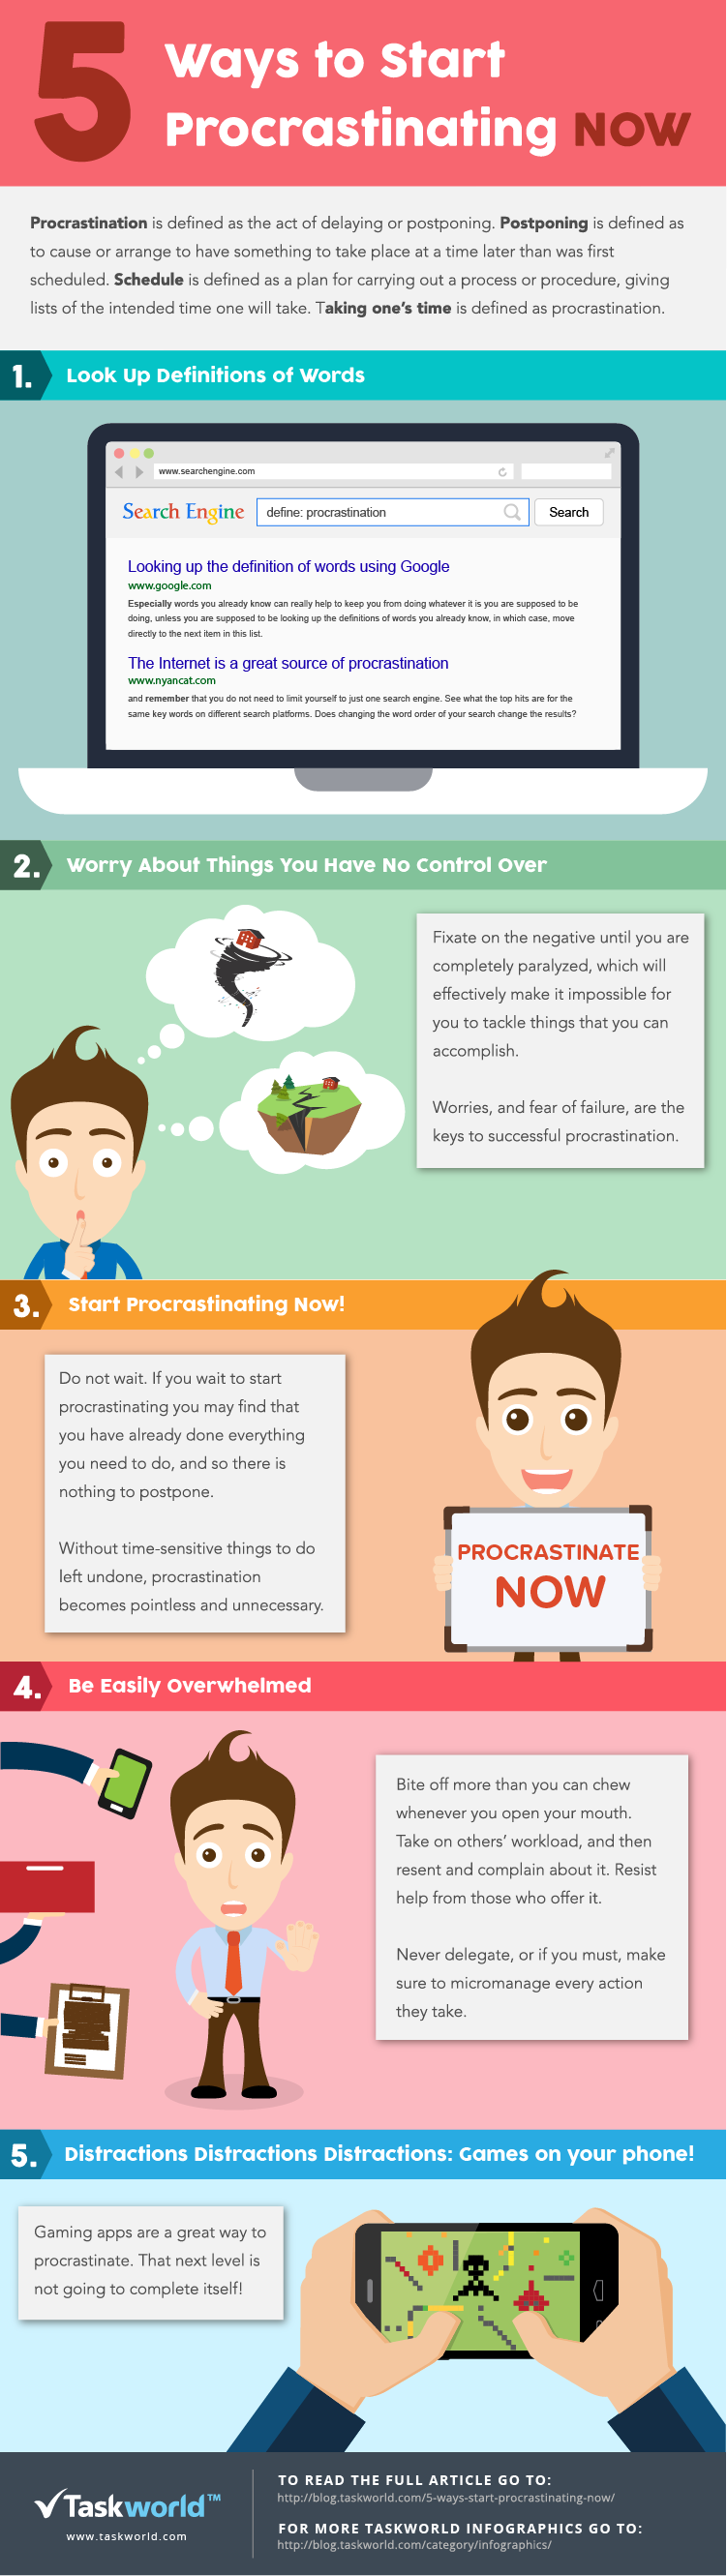 5-ways-to-procrastinate-infographic-plaza